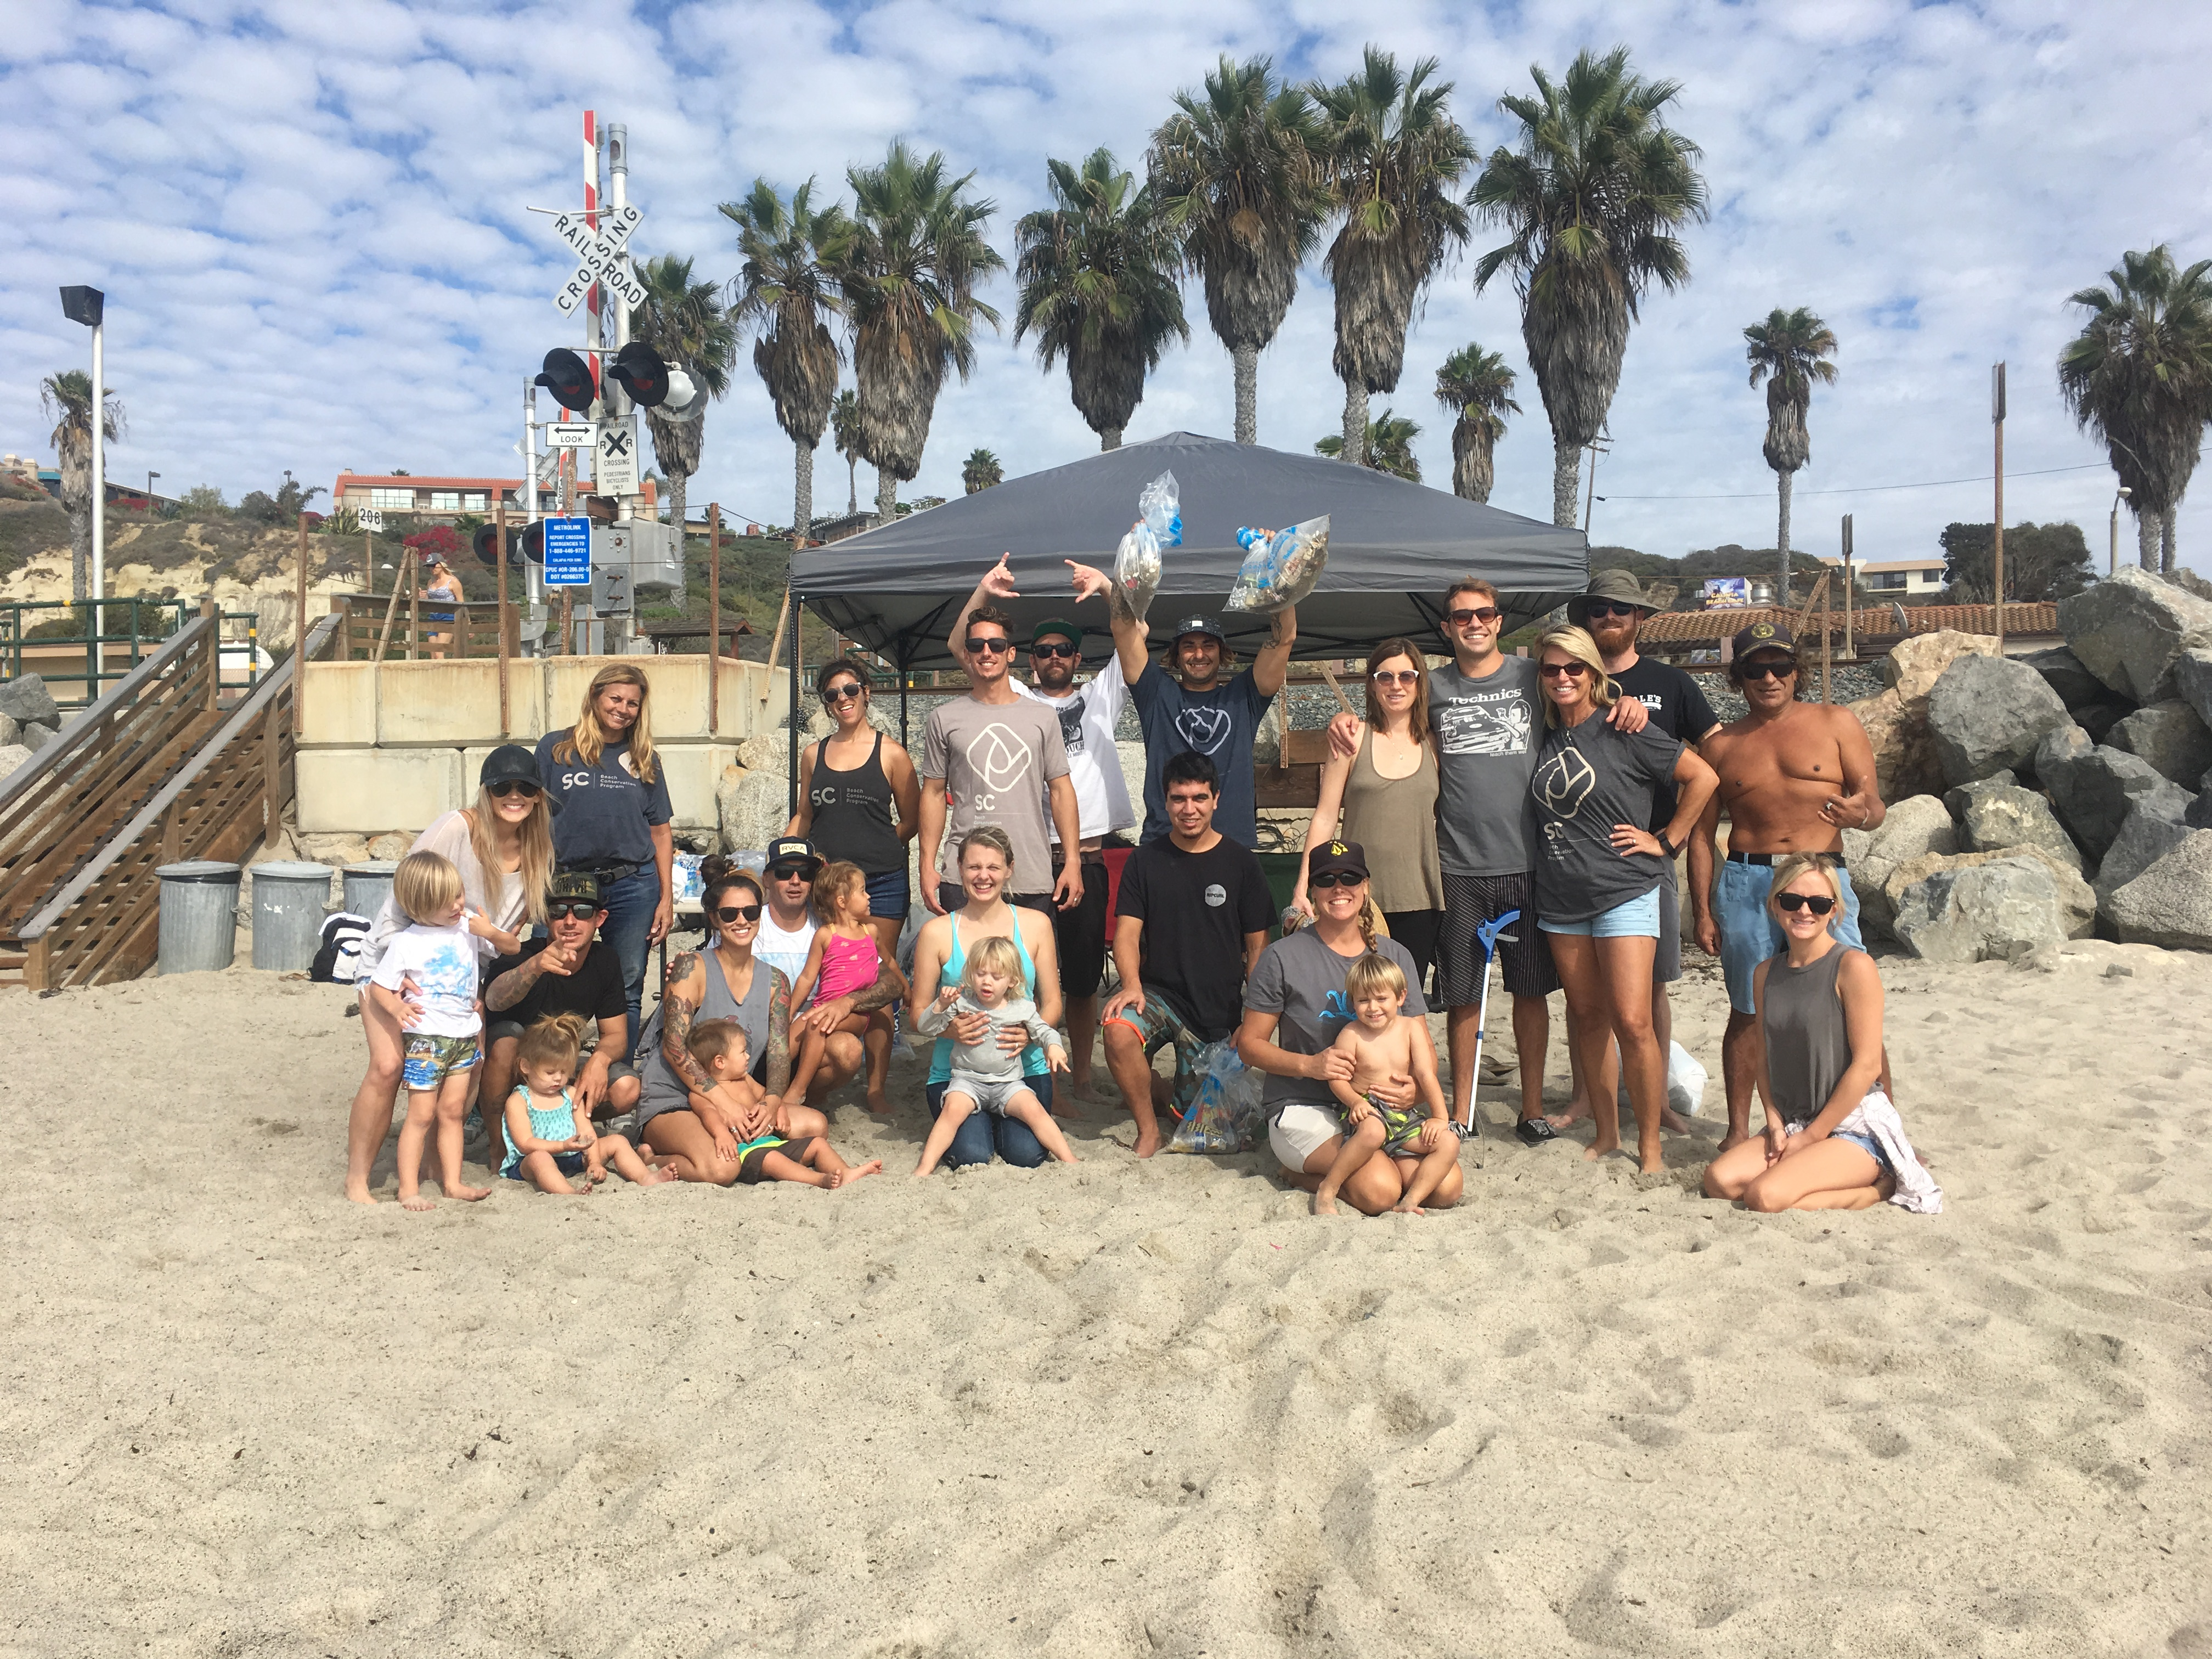 The San Clemente Beach Conservation Program has already hosted a series of beach cleanup days, and according to social media accounts is working to adopt San Clemente State Beach. Photo: Courtesy of Shon Miller